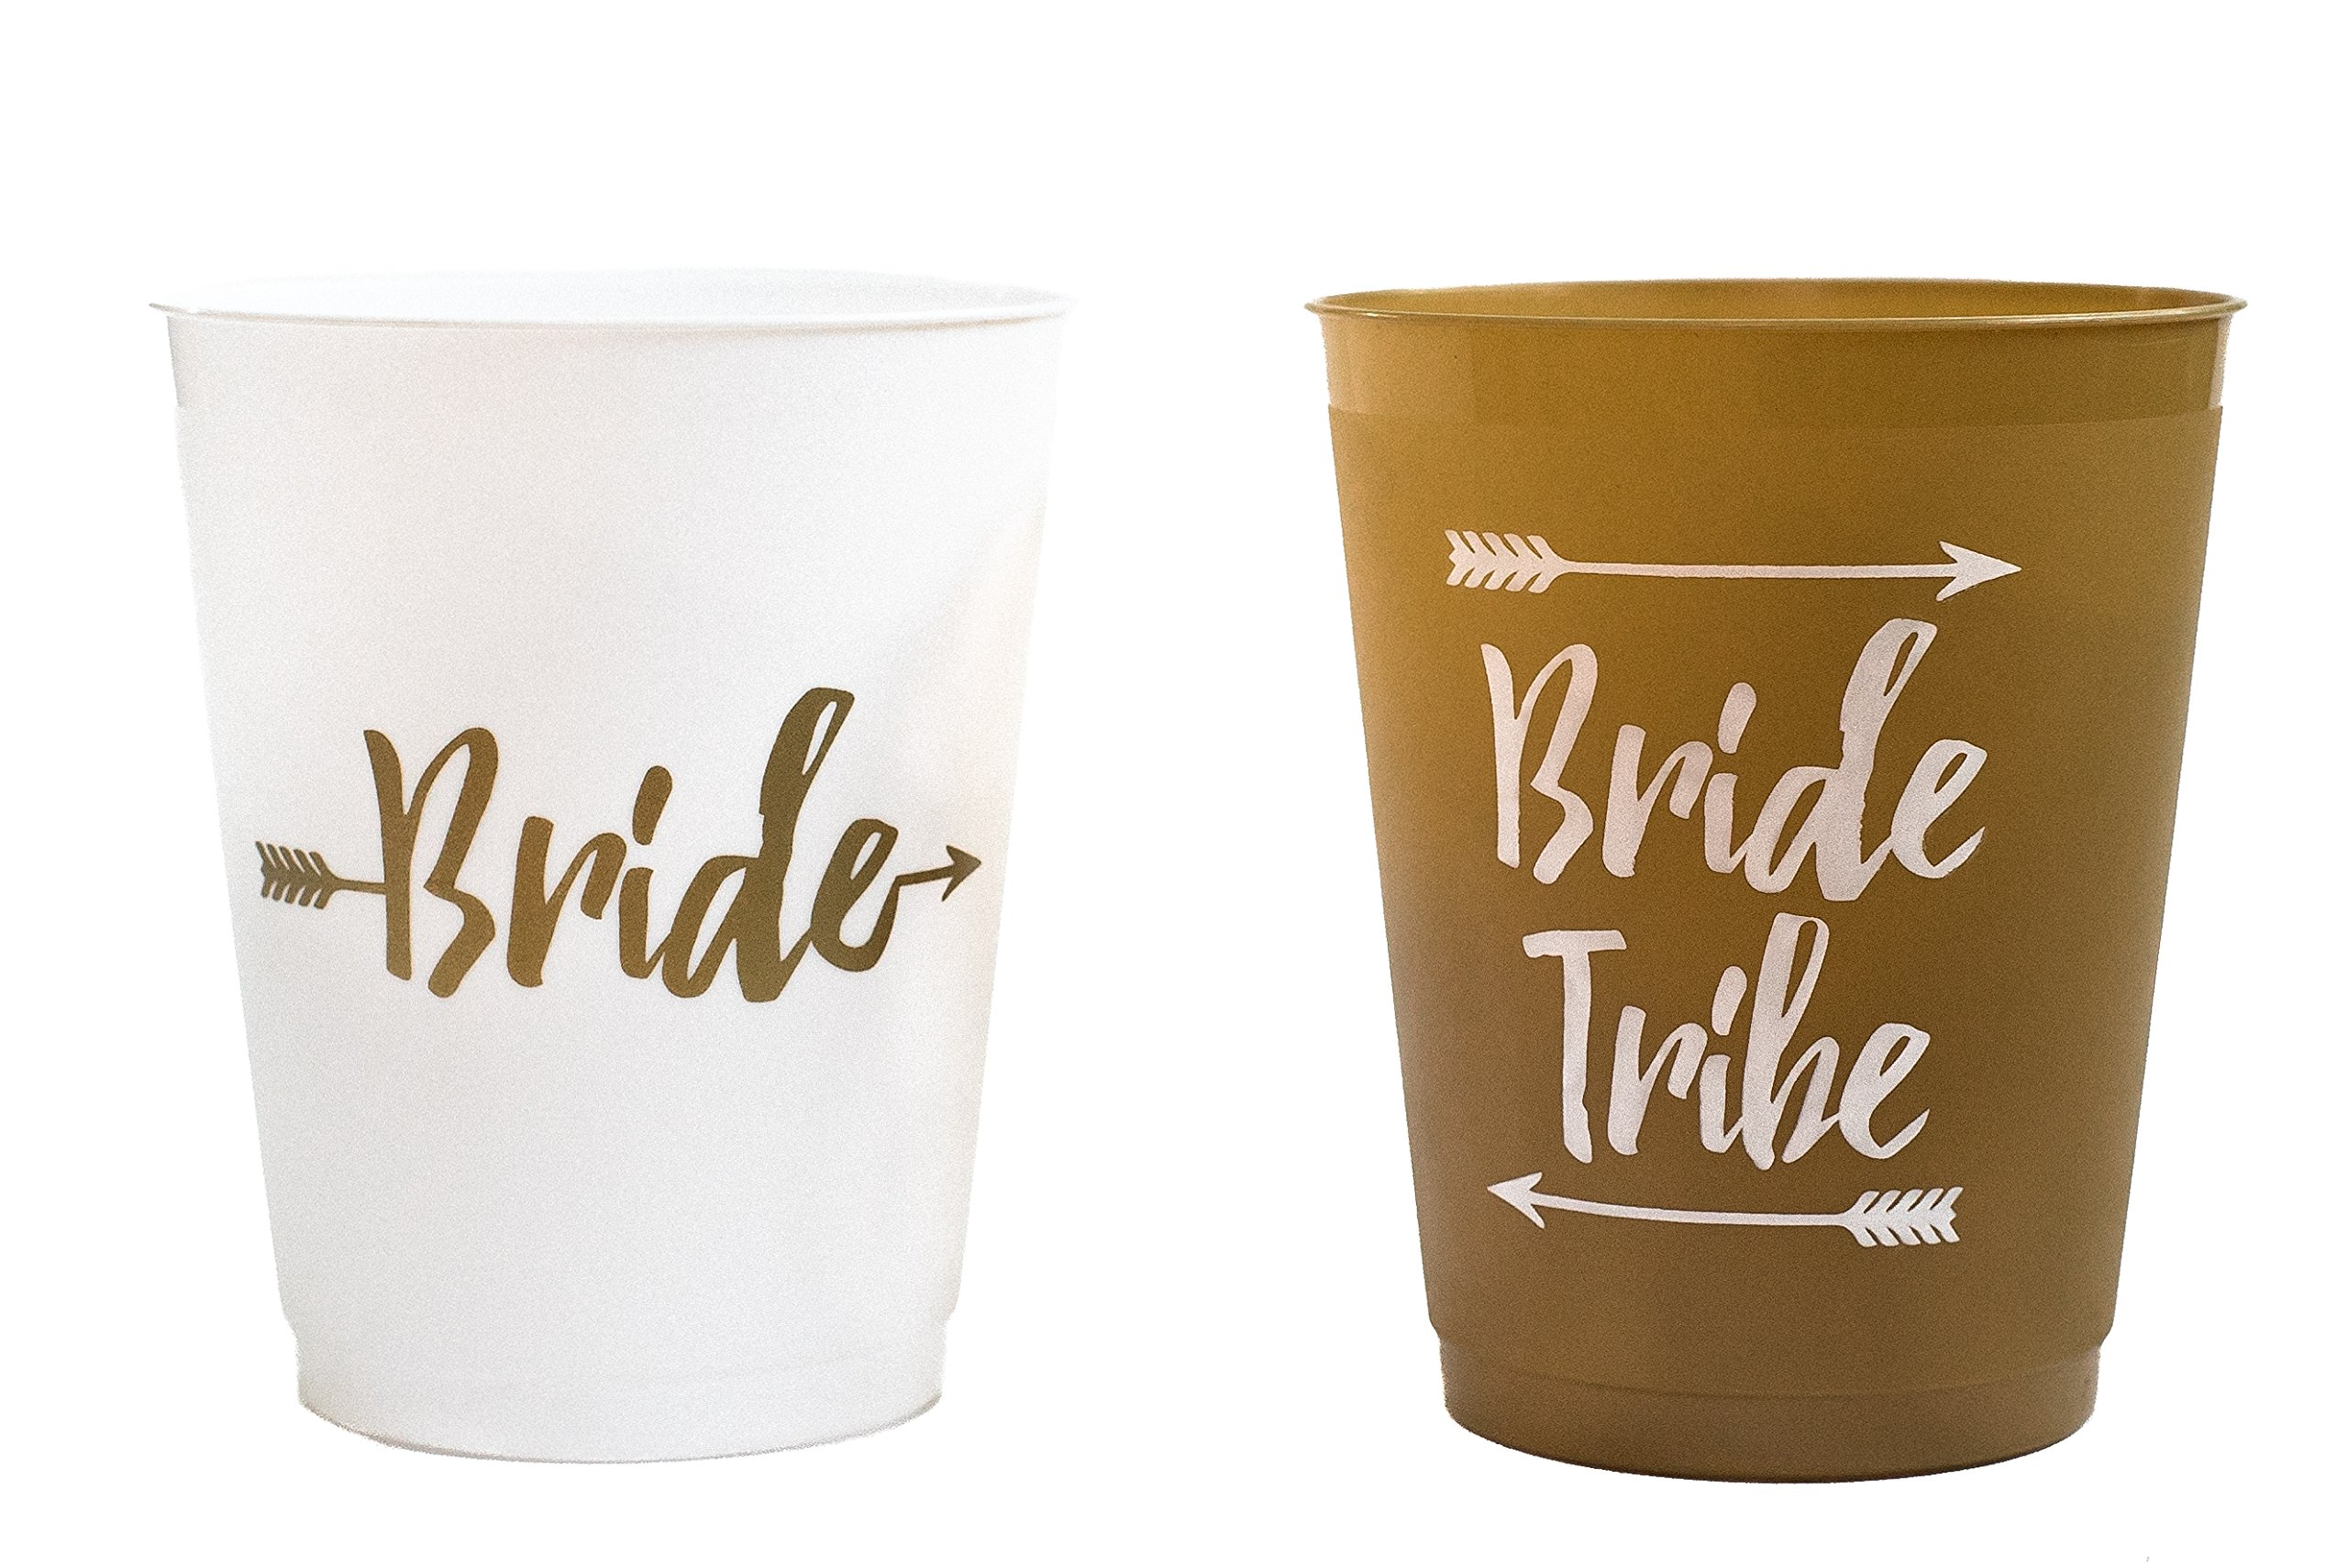 14 Bride and Bride Tribe Bachelorette Party Cups, Bridal Shower Cups for Bachelorette Party, Bridal Shower - White and Gold, 16 Ounces